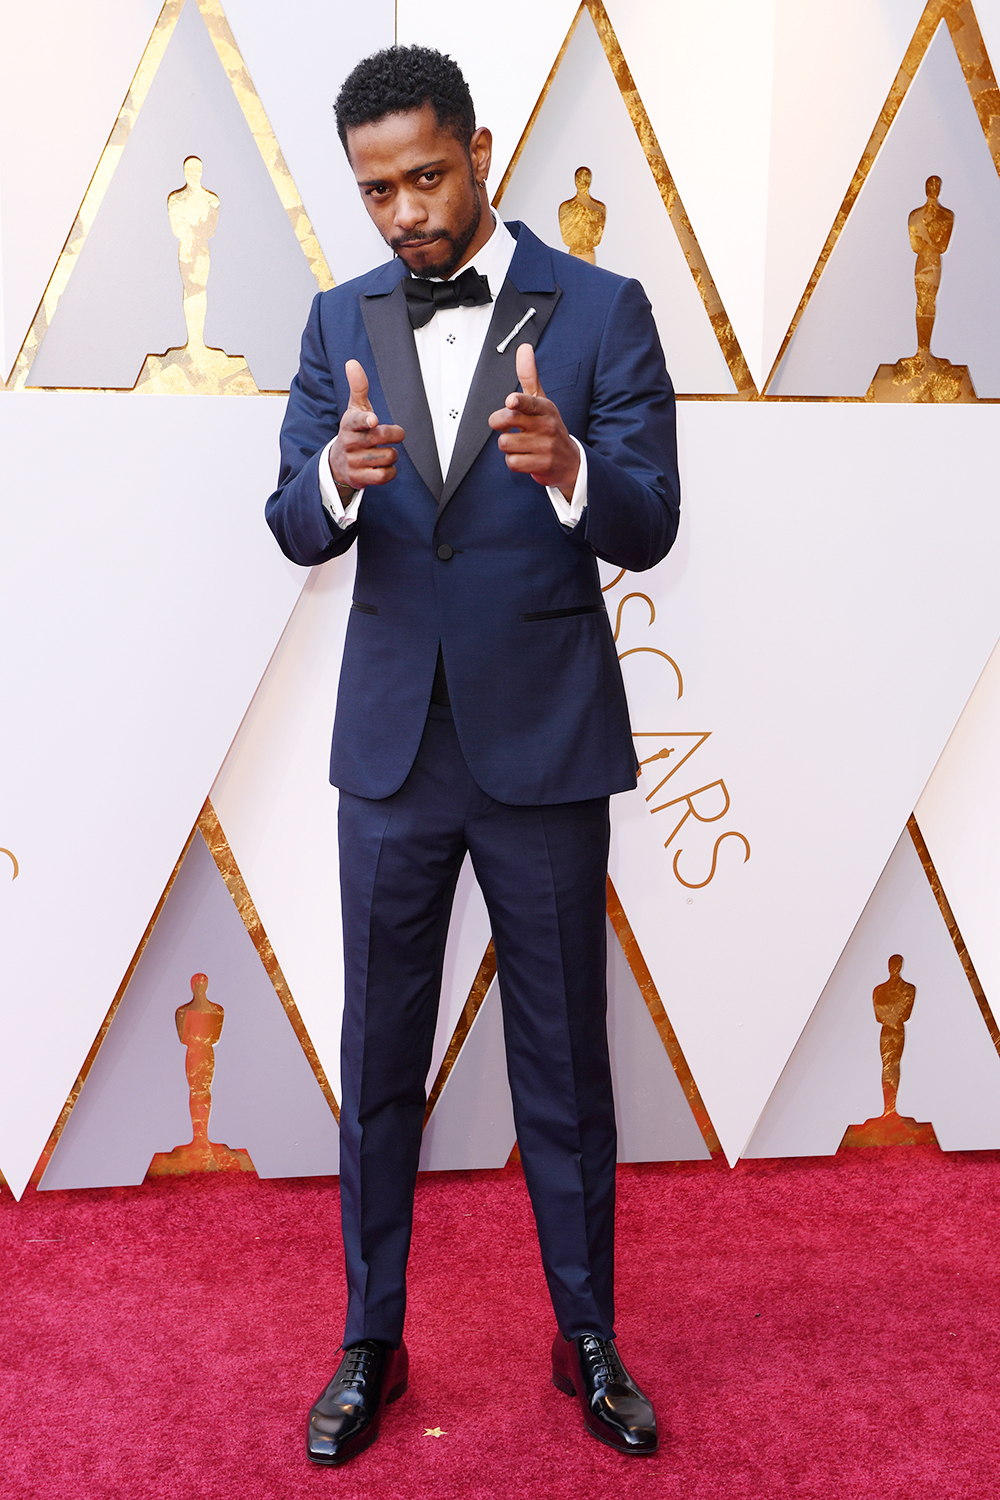 lakeith-stanfield-oscars-red-carpet.jpg